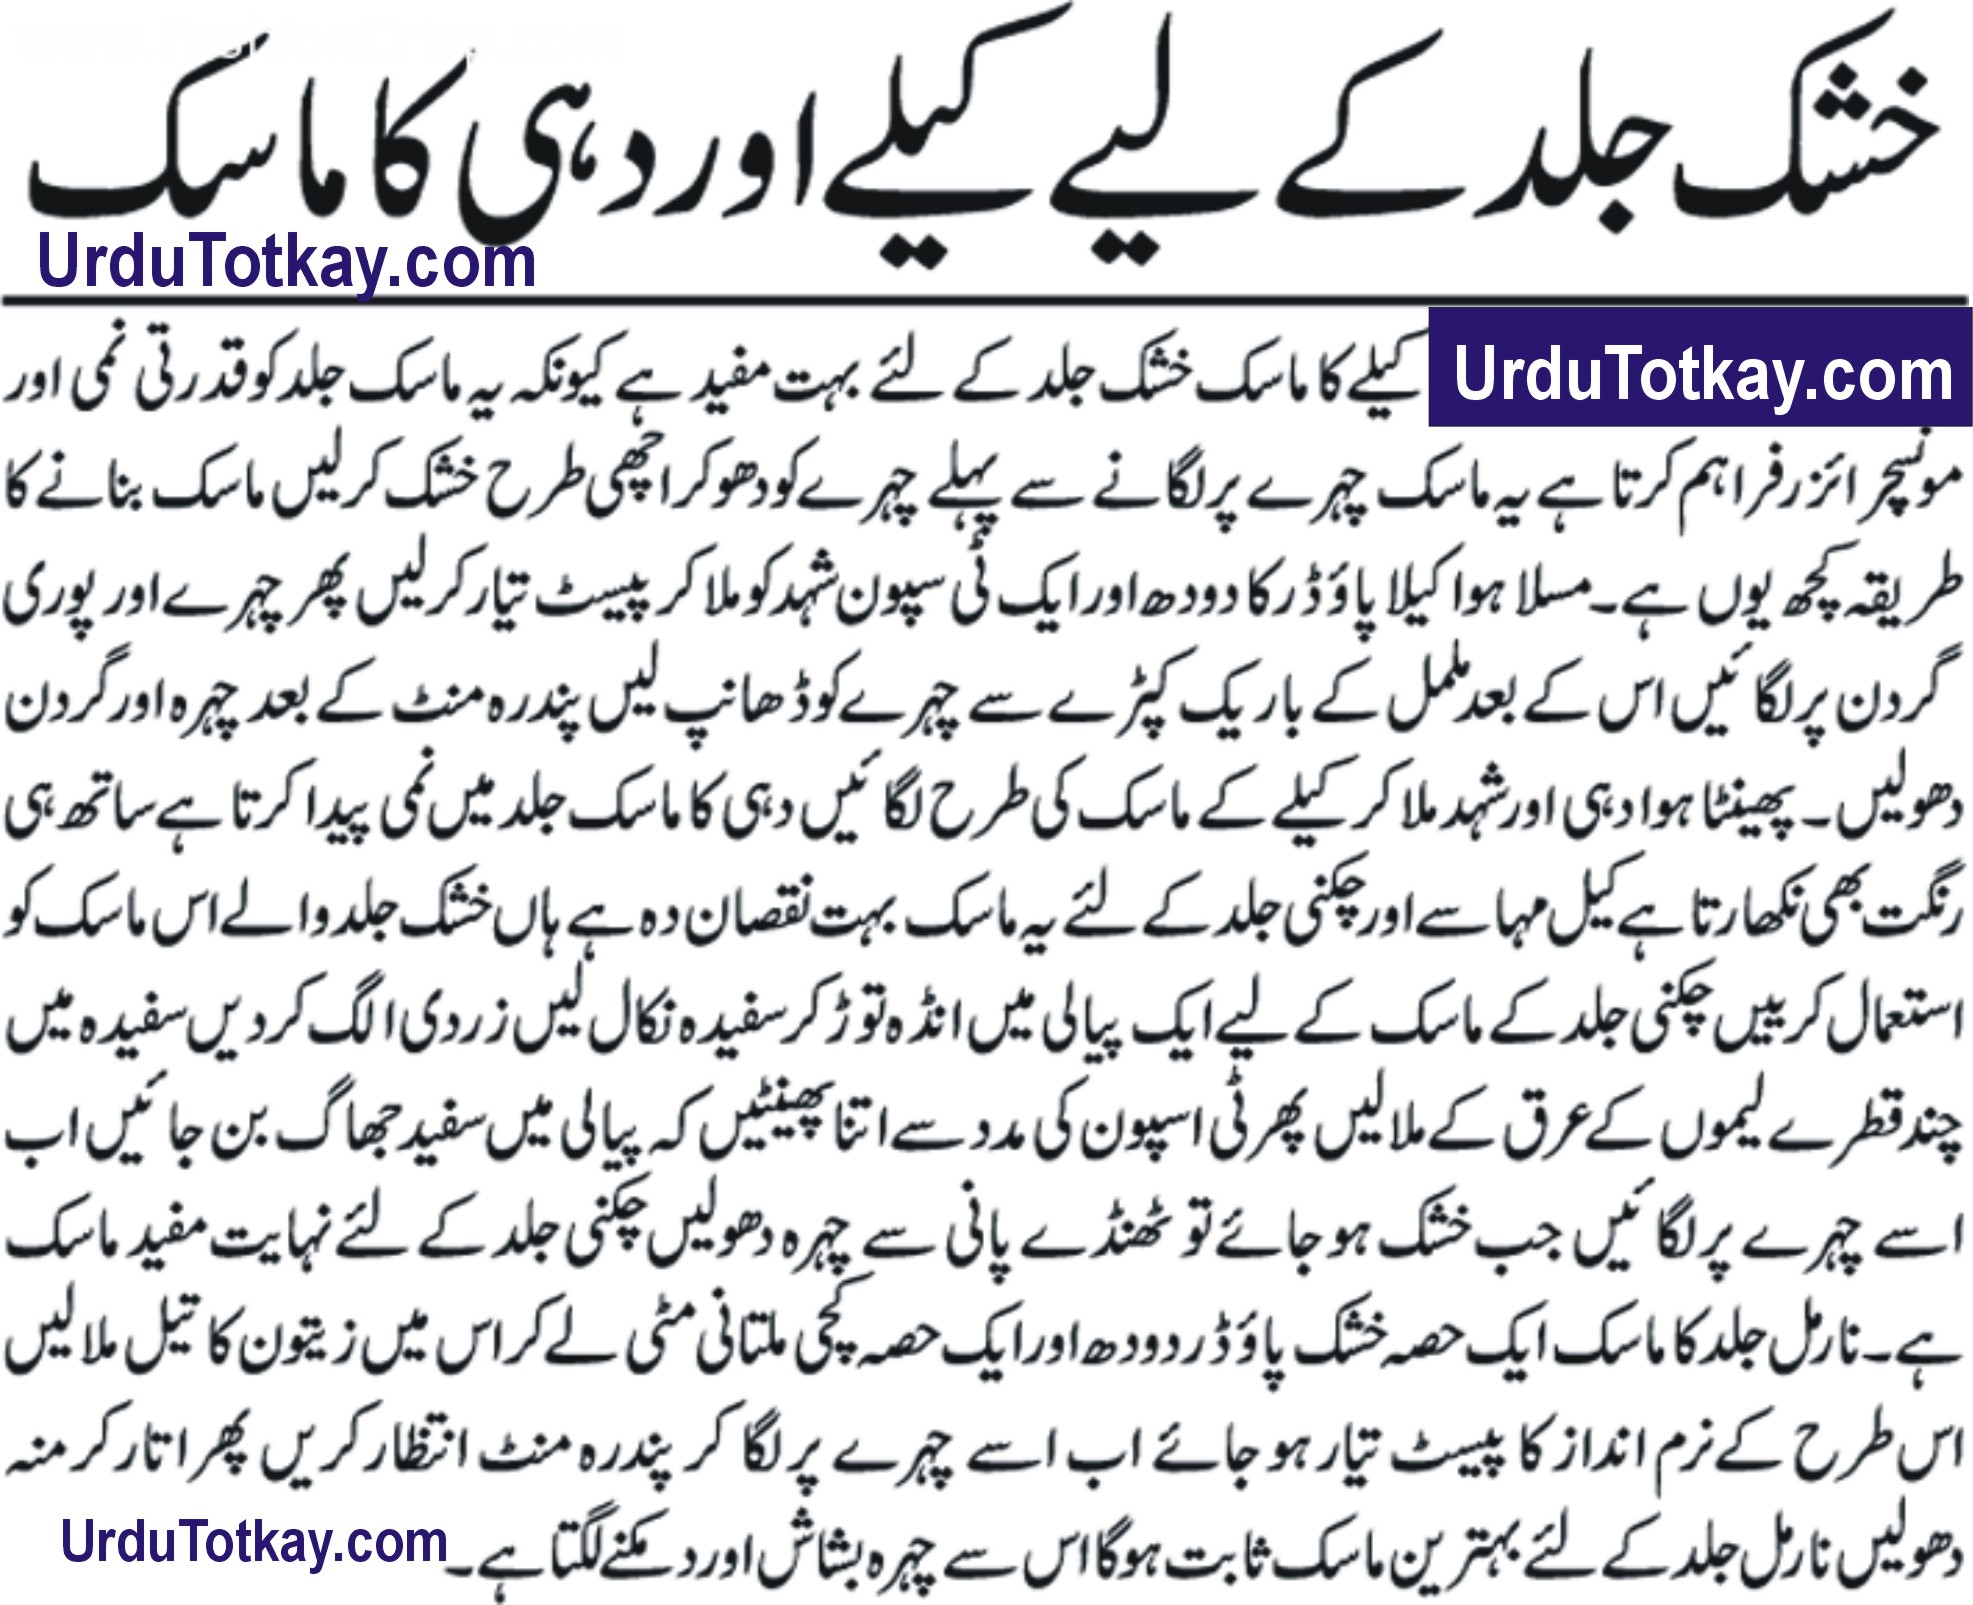 urdu-totkay-for-dry-skin